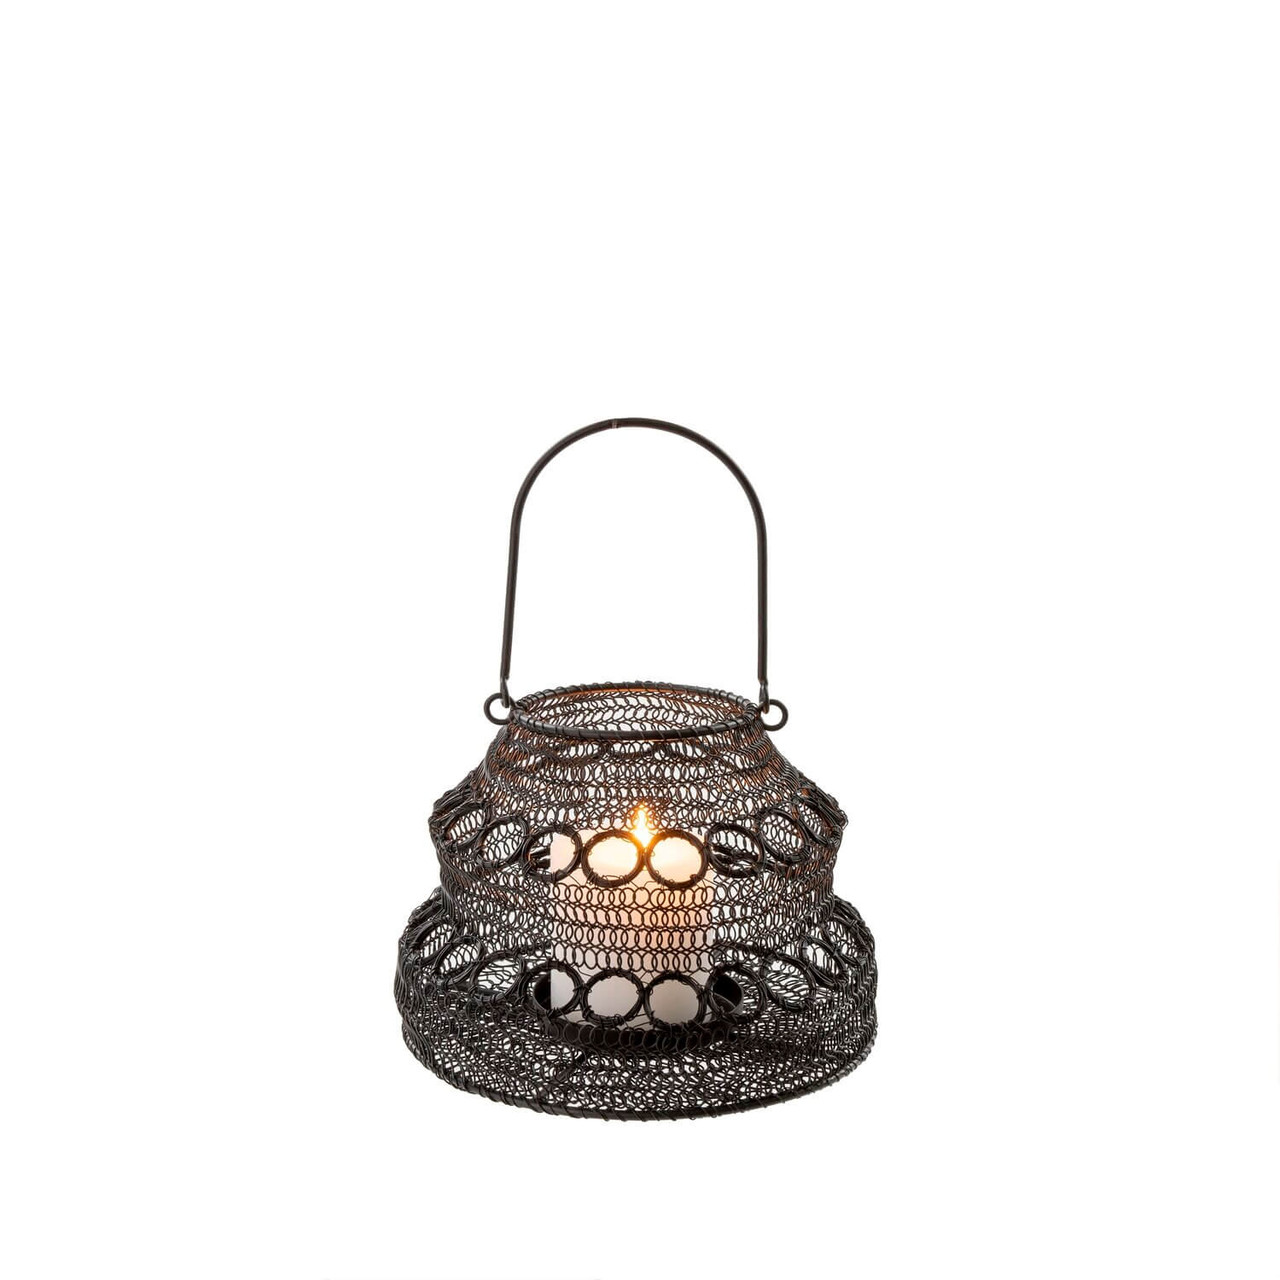 """With an organic silhouette and woven iron mesh design, this arty lantern collapses flat for storage. Perfect for the backyard, front porch, or summer garden parties. Holds a candle up to 3.25"""" round. 8"""" Round x 5.5 """"H. Wipe clean with damp cloth."""